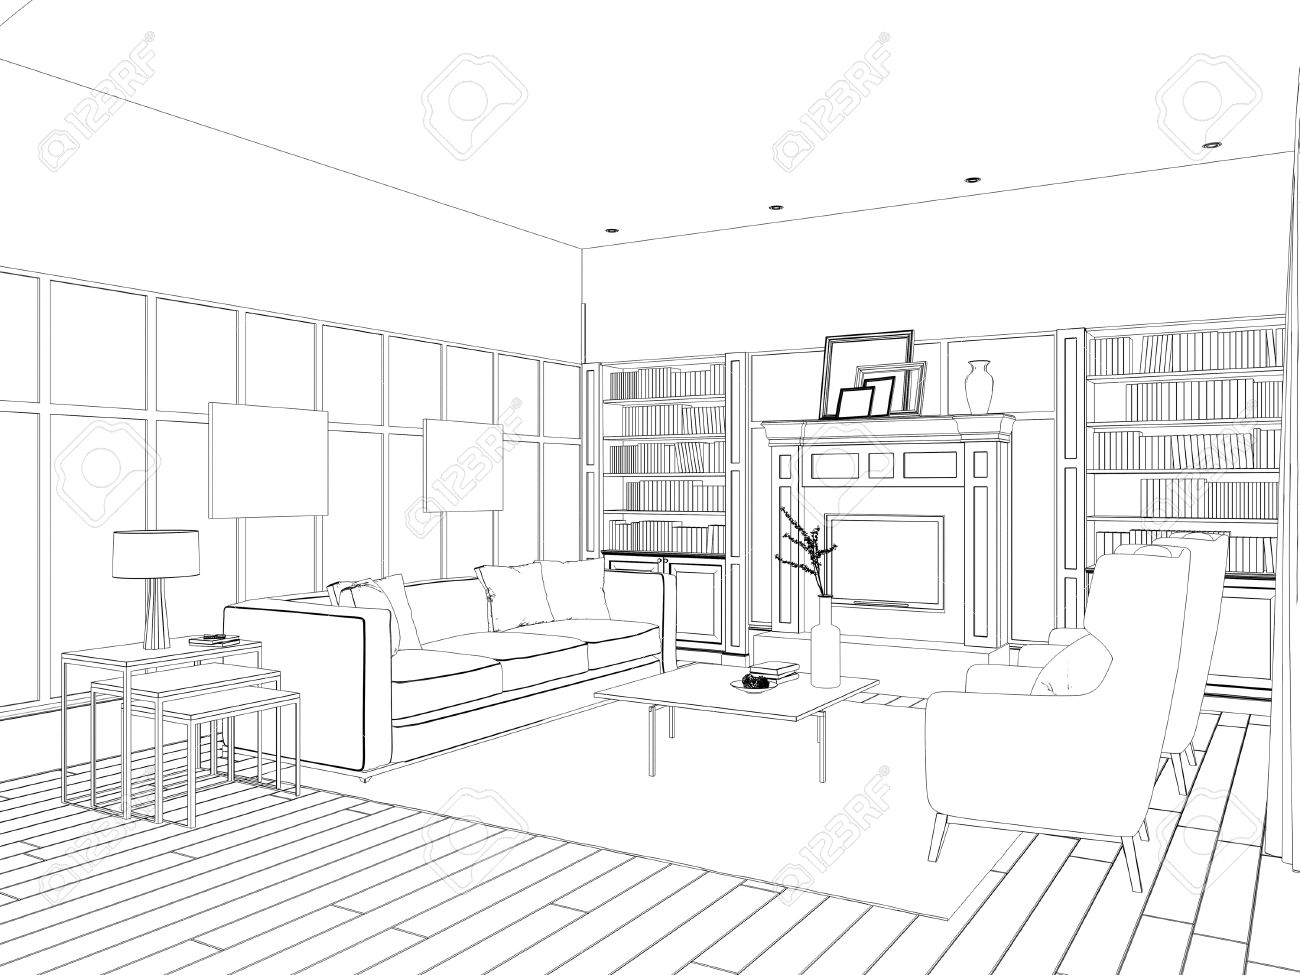 Sketch Of The Living Room With Sofa, Frames And Coffee Table Stock ...